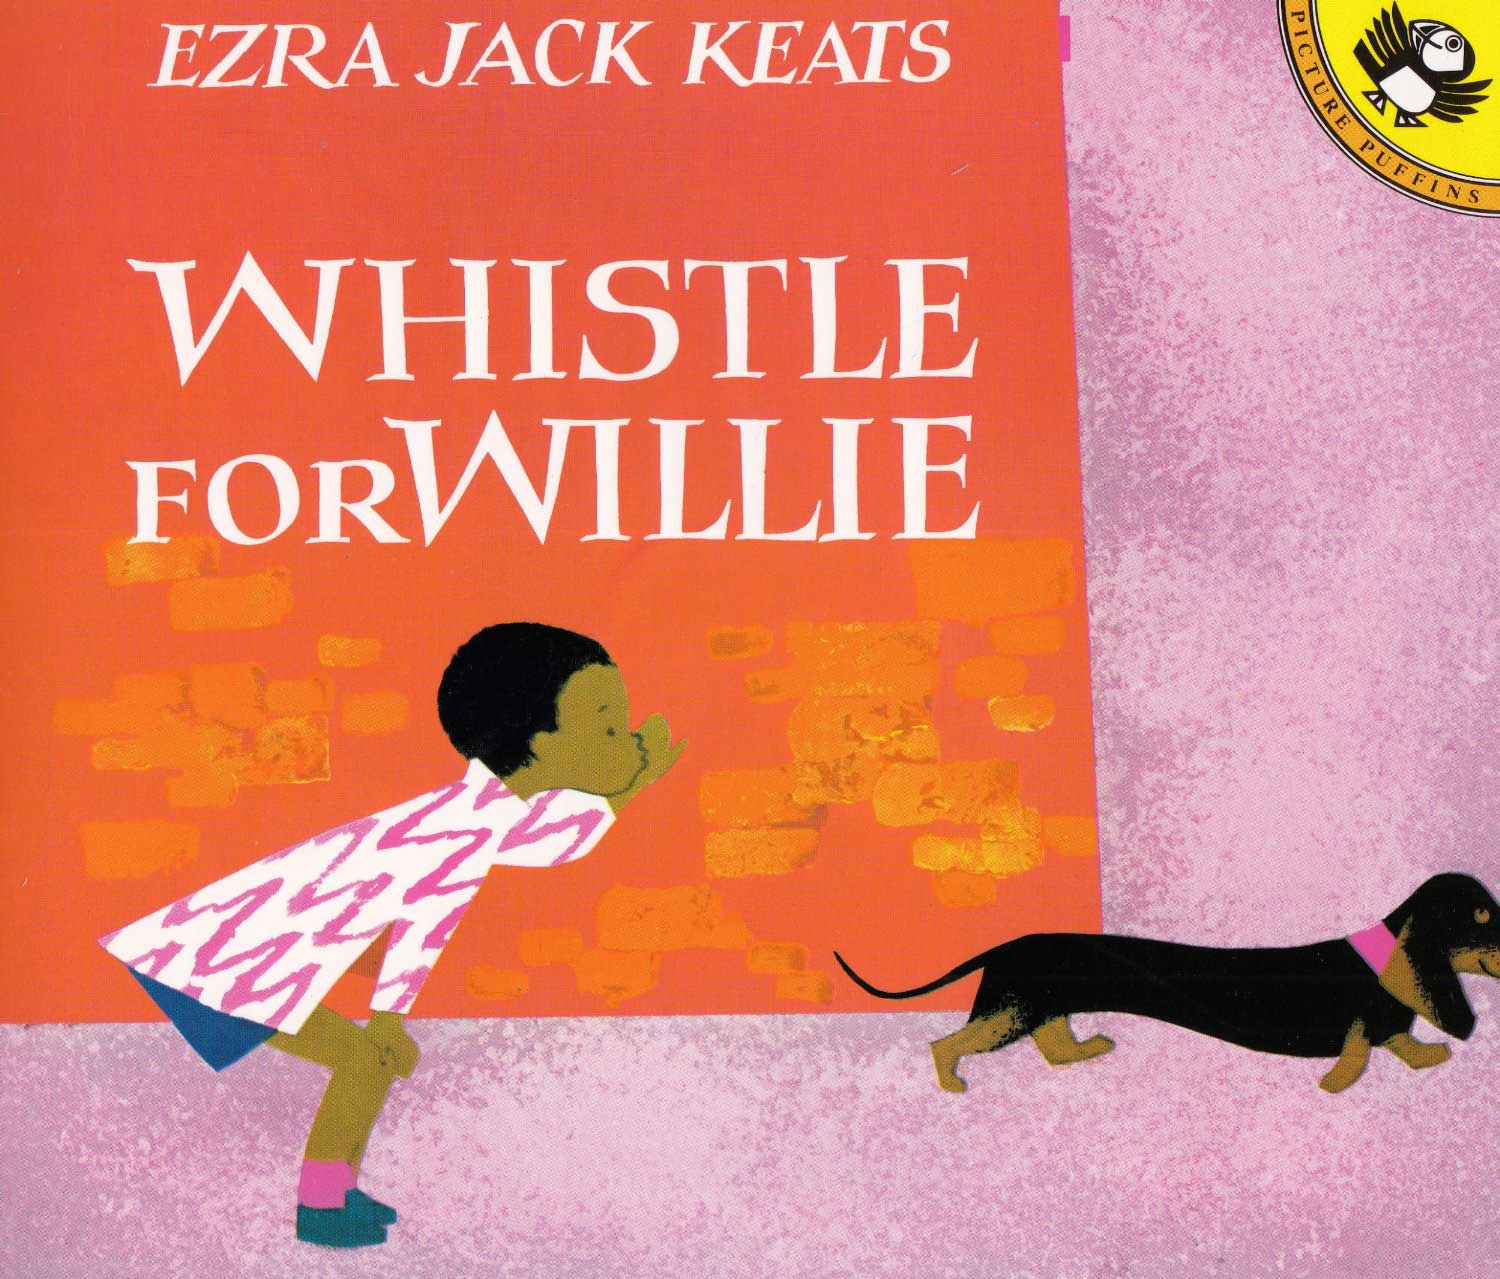 Whistle for Willie, by Ezra Jack Keats.                                                                                                                            Richly colorful illustrations accompany this tale about a boy learning to whistle.                                                                                                                            Buy now: Whistle for Willie